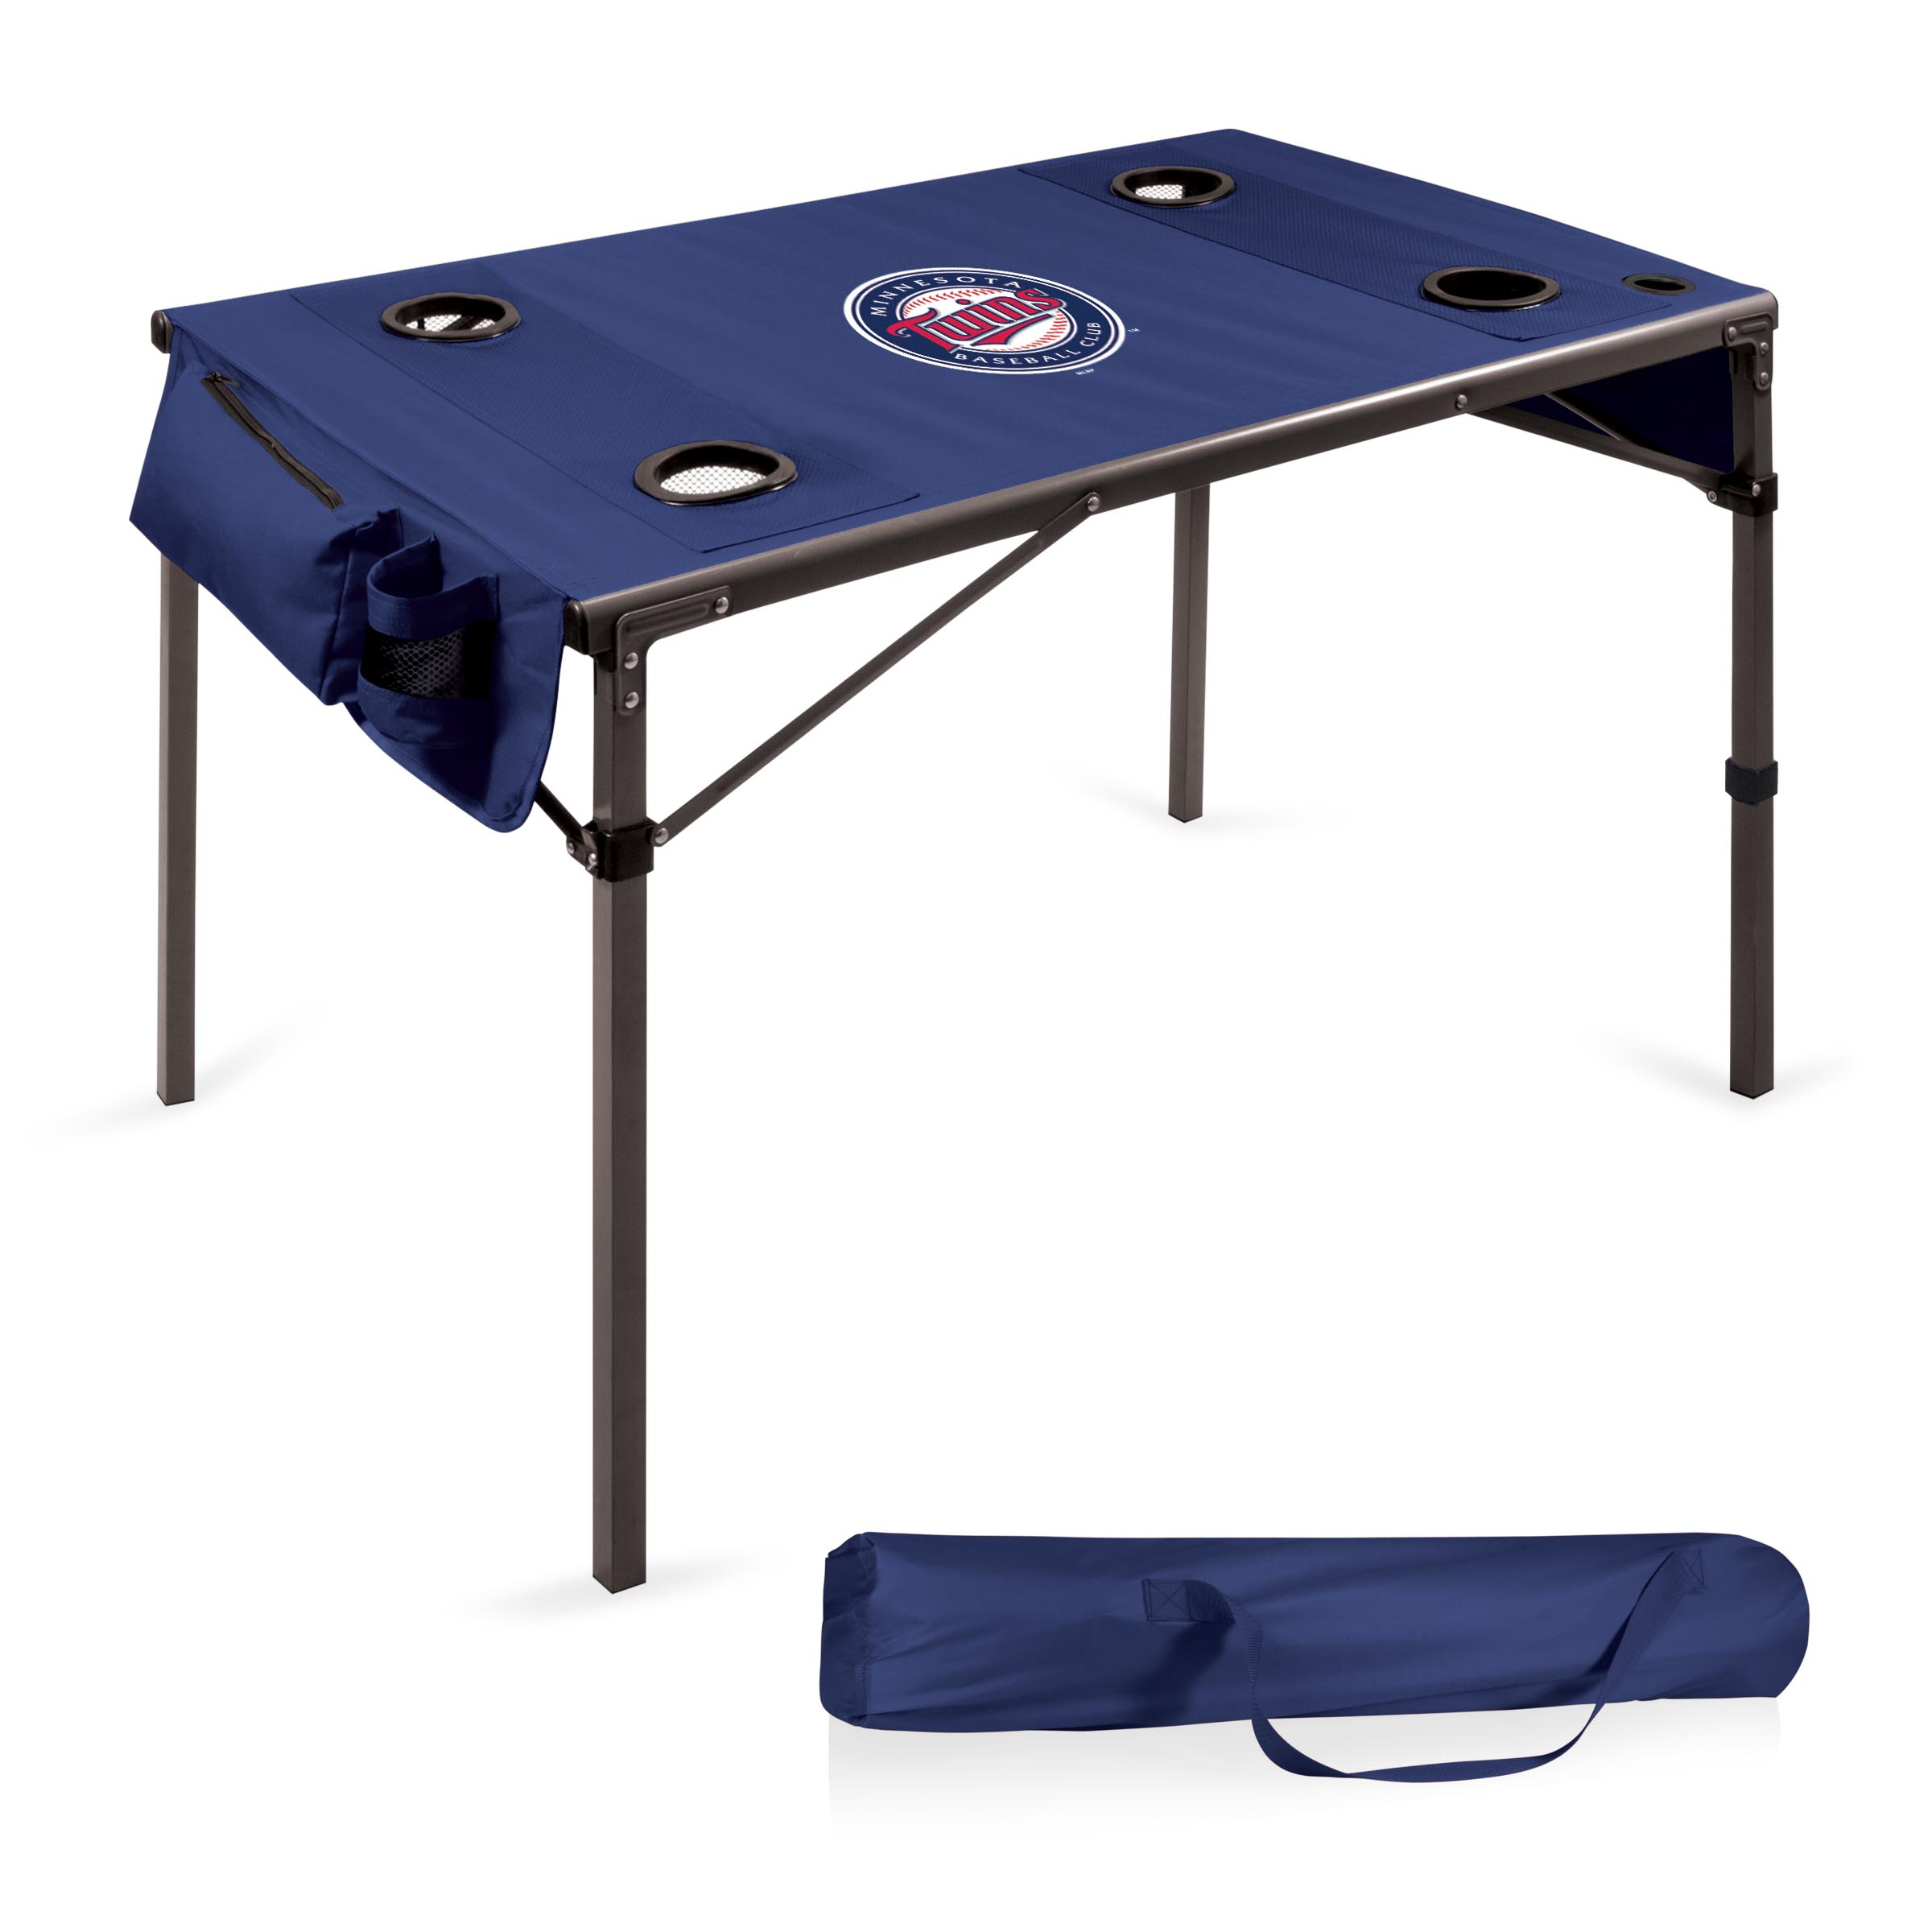 Minnesota Twins Portable Folding Travel Table - Navy - No Size